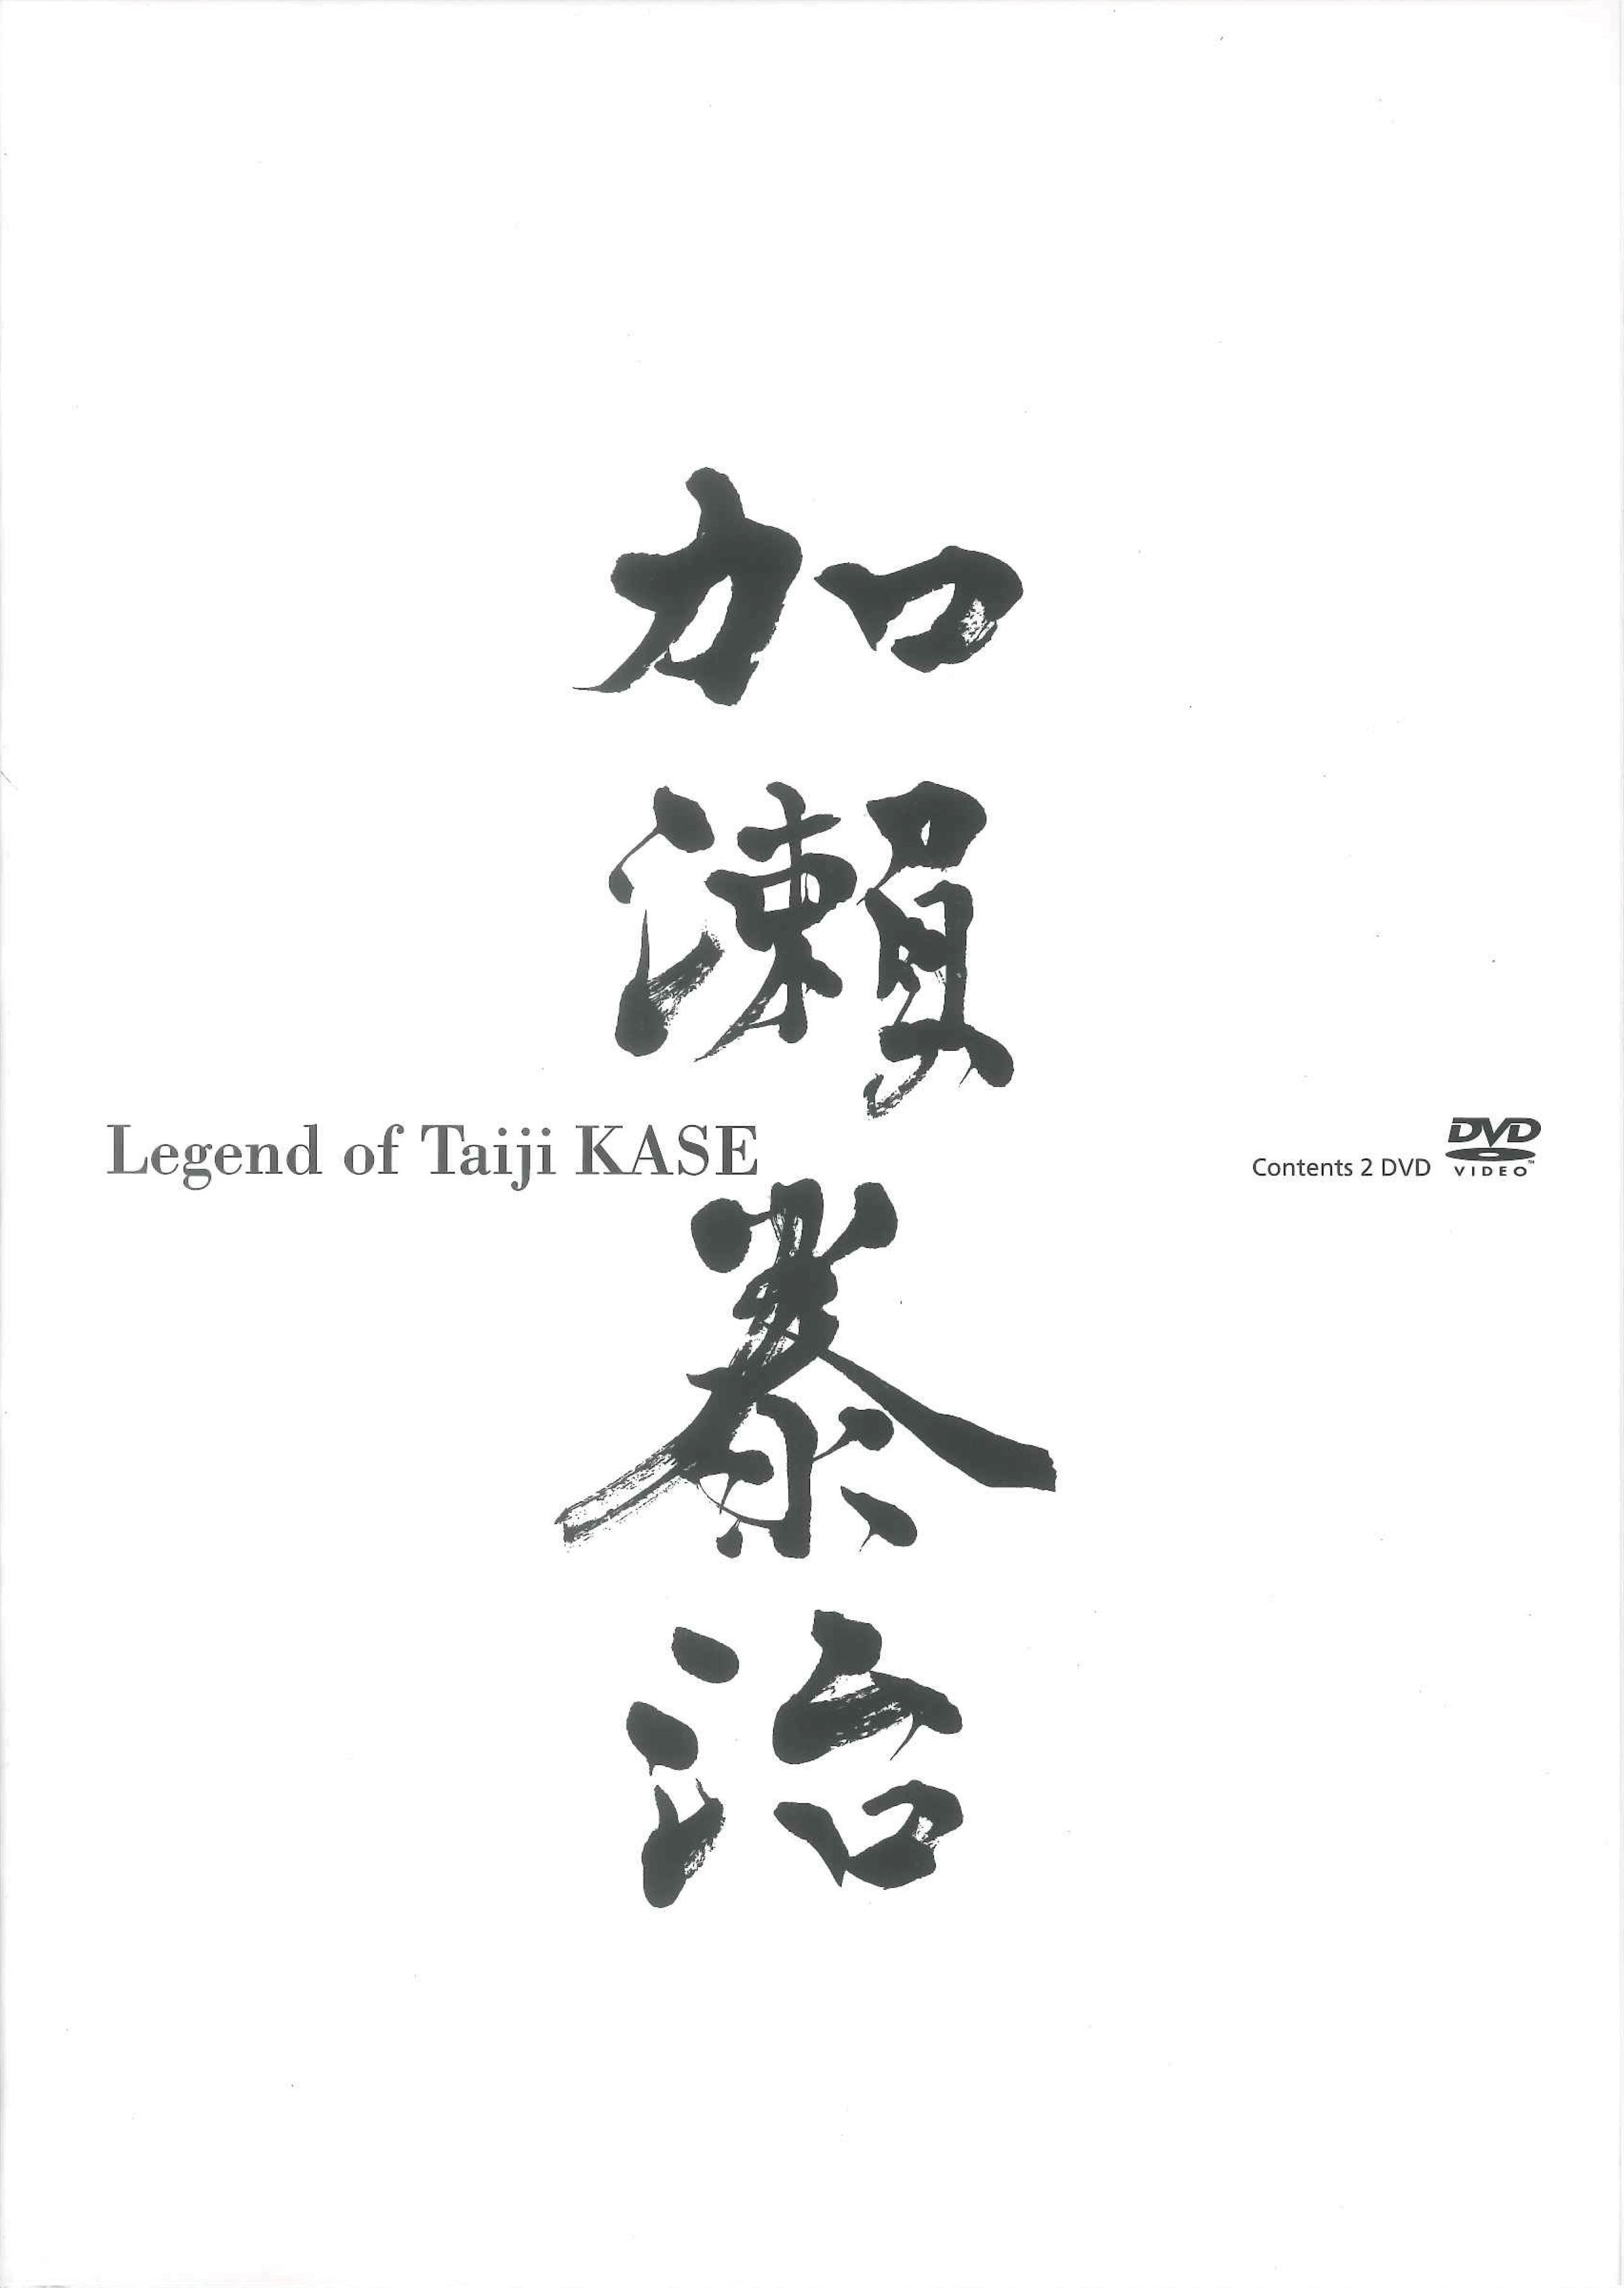 LEGEND OF TAIJI KASE